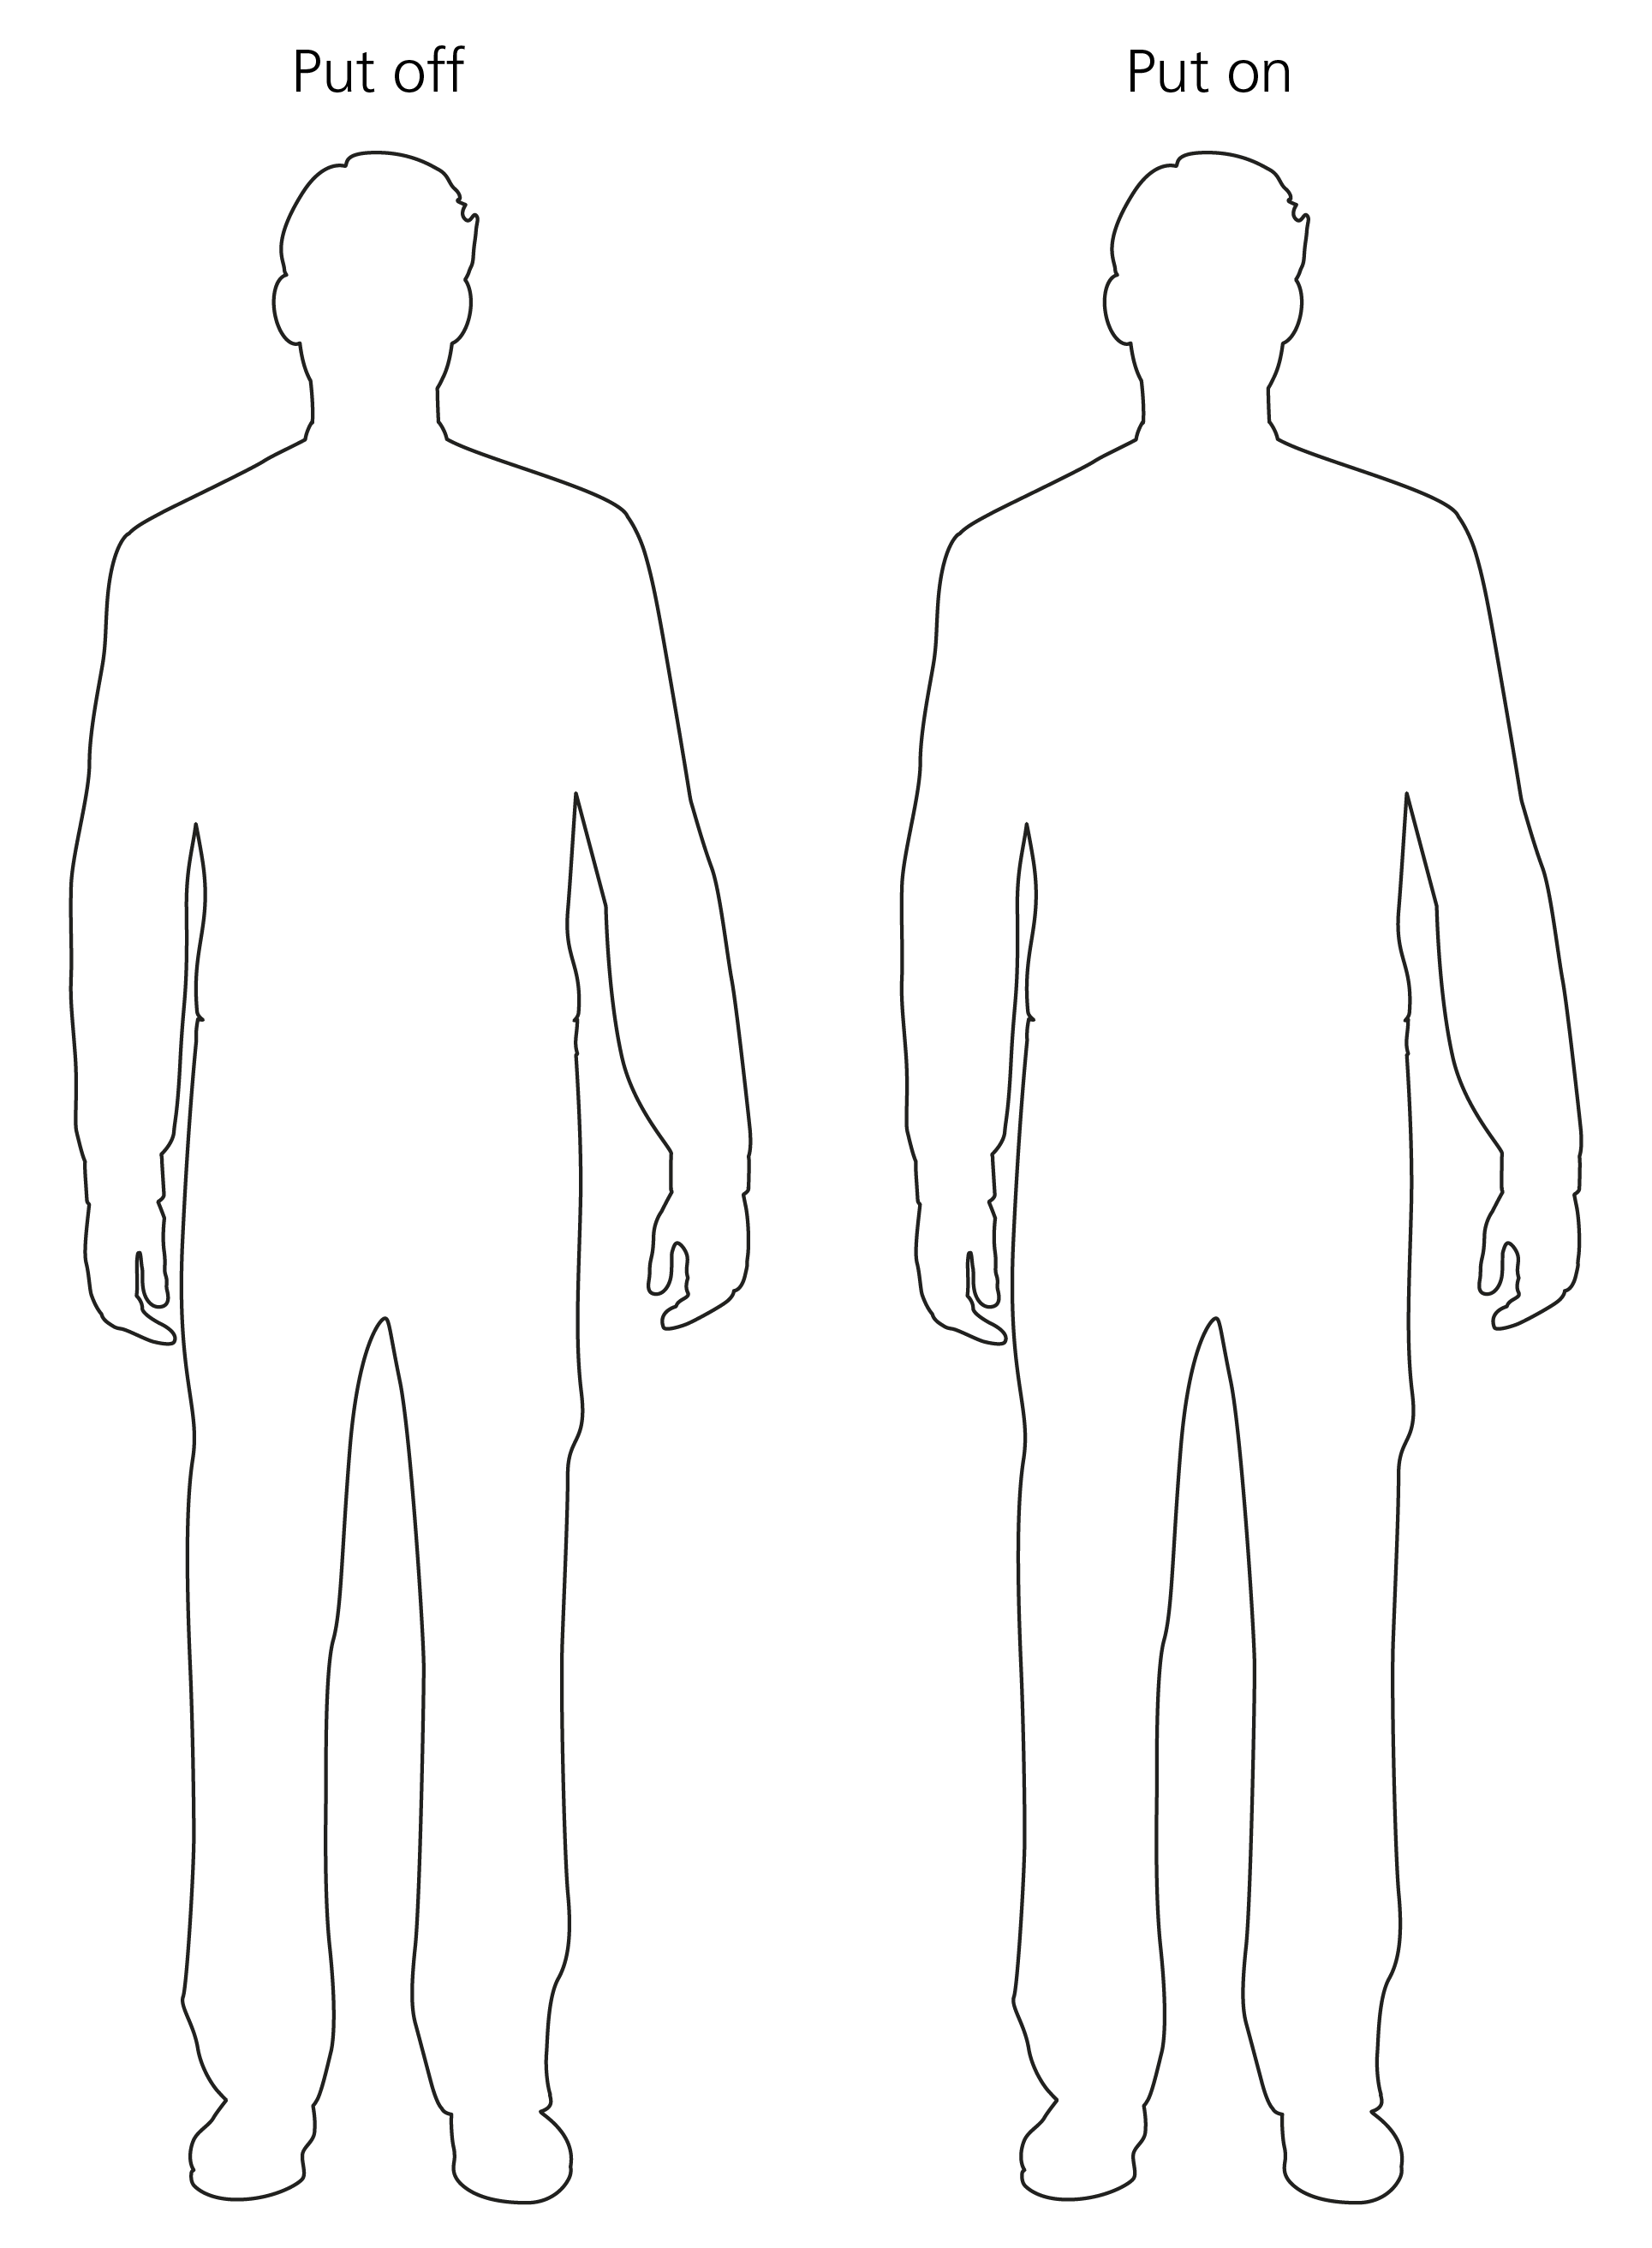 drawing, 2 person outlines